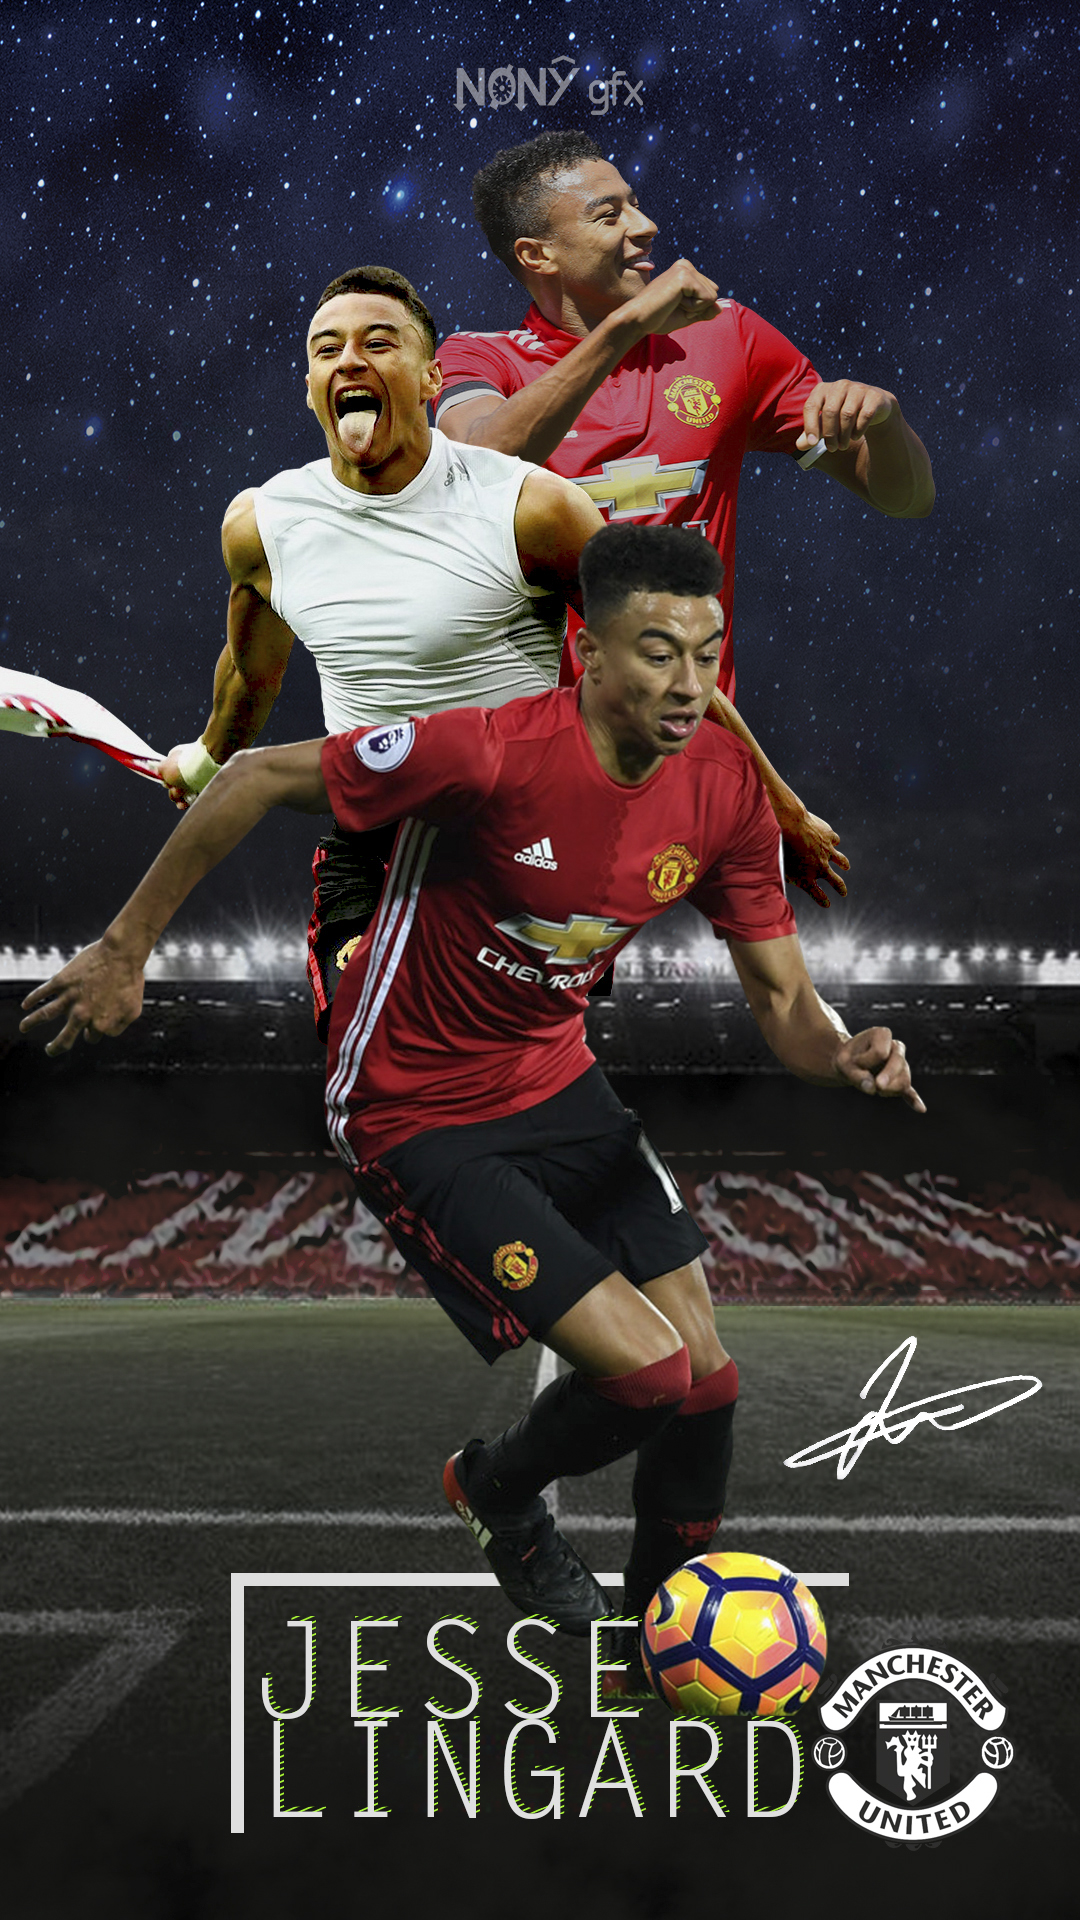 Jesse Lingard Signed Wallpaper By Nony14 On Deviantart